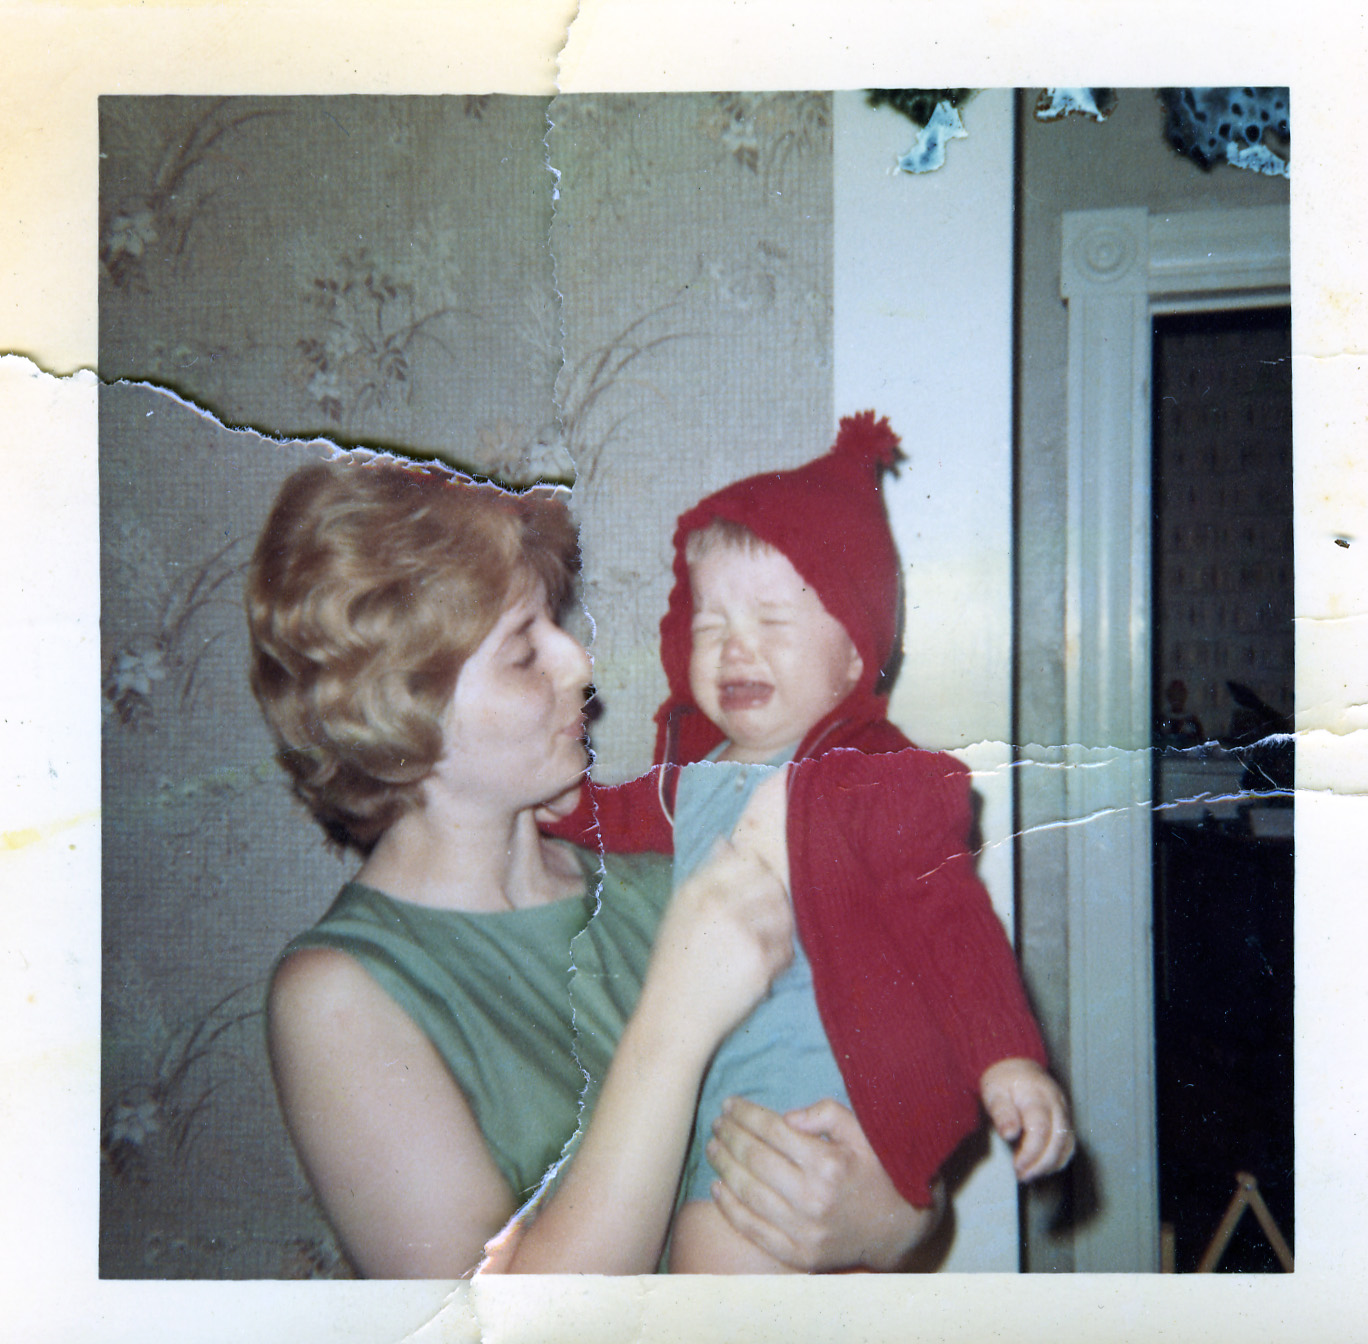 In an old photo that's been torn and taped back together, a mom holds and comforts a wailing child